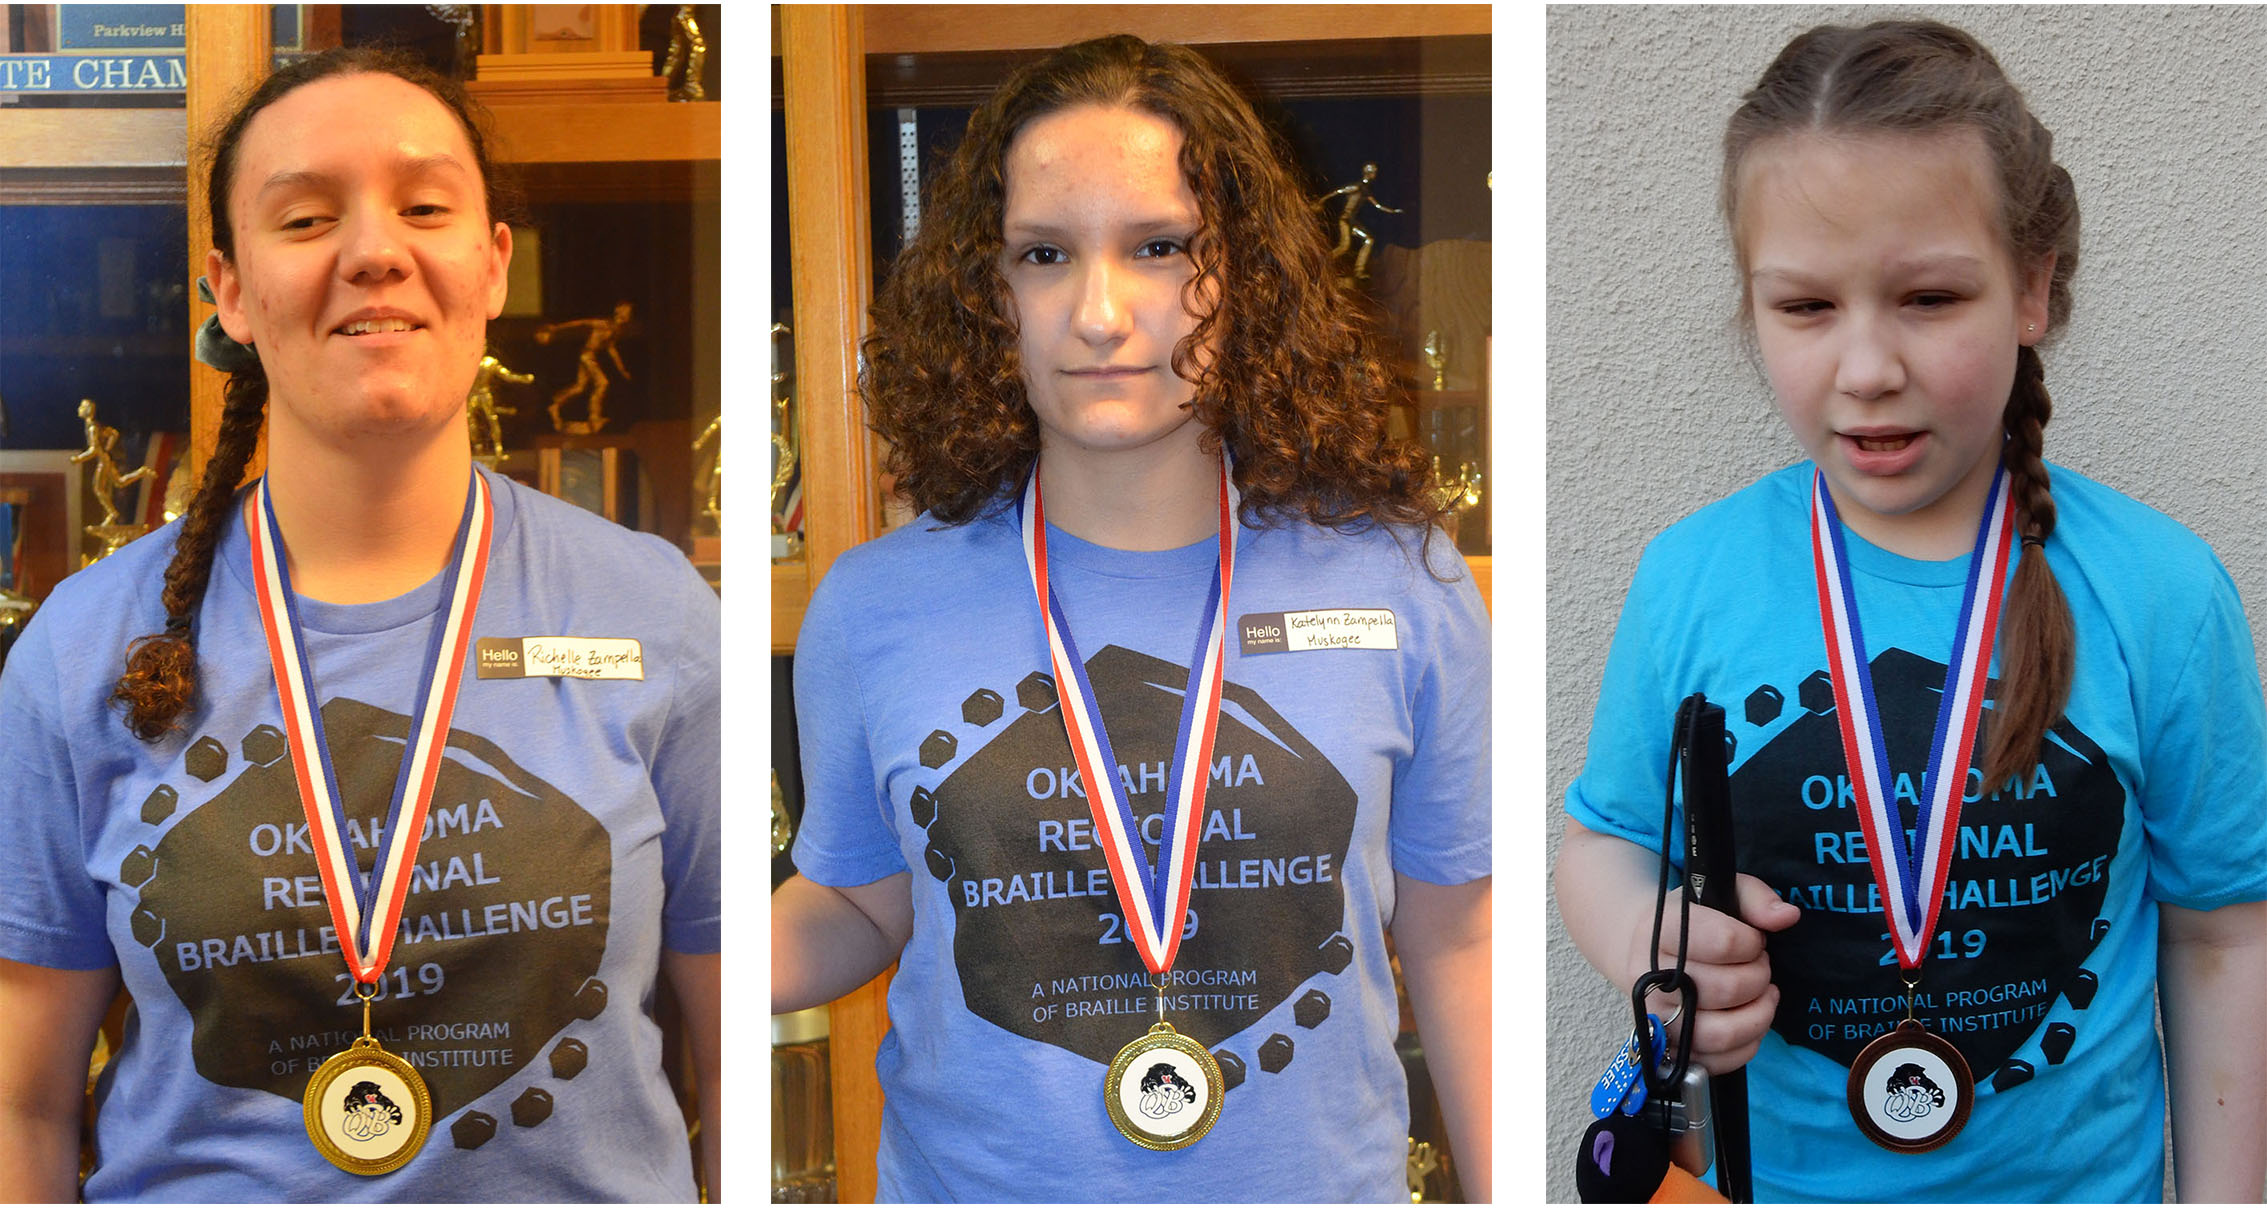 Photos of 3 students wearing medals on ribbons around their necks